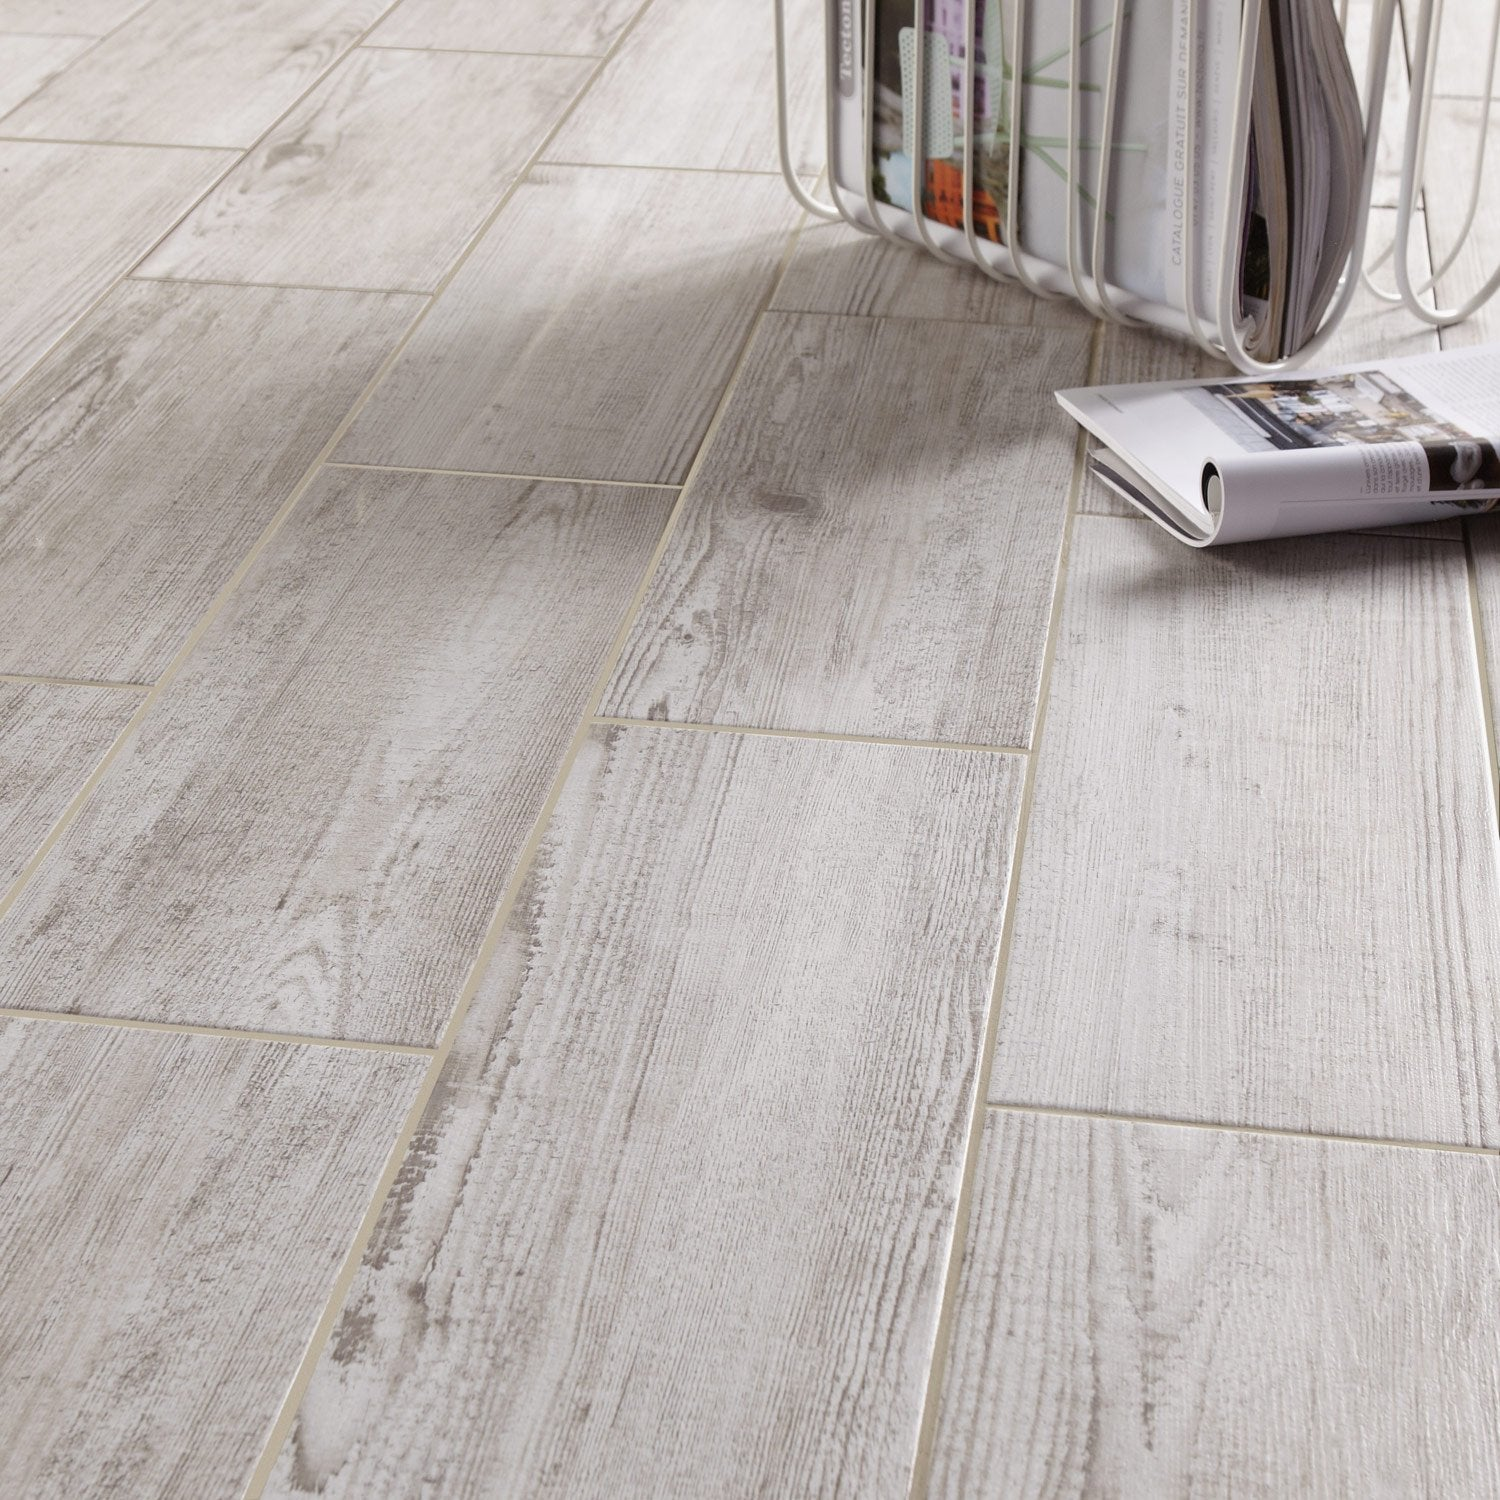 Carrelage bois leroy merlin for Carrelage vieilli